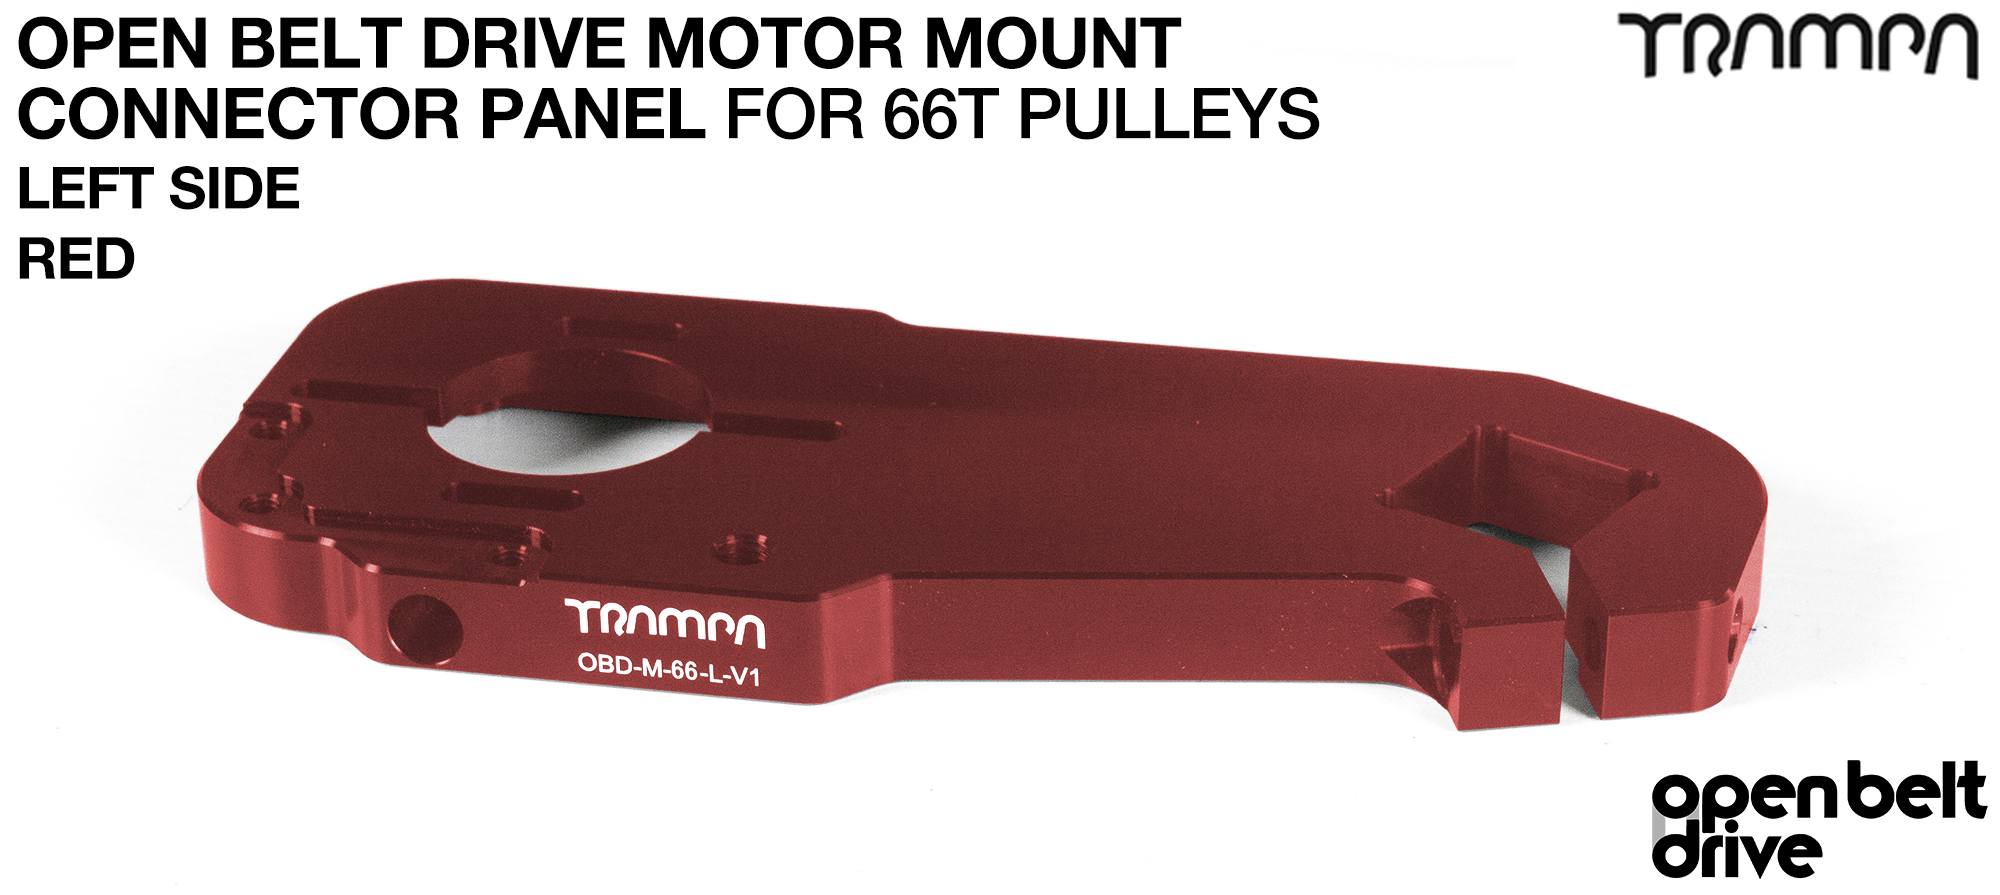 RED 66T TWIN OBD Motor Mount Panels